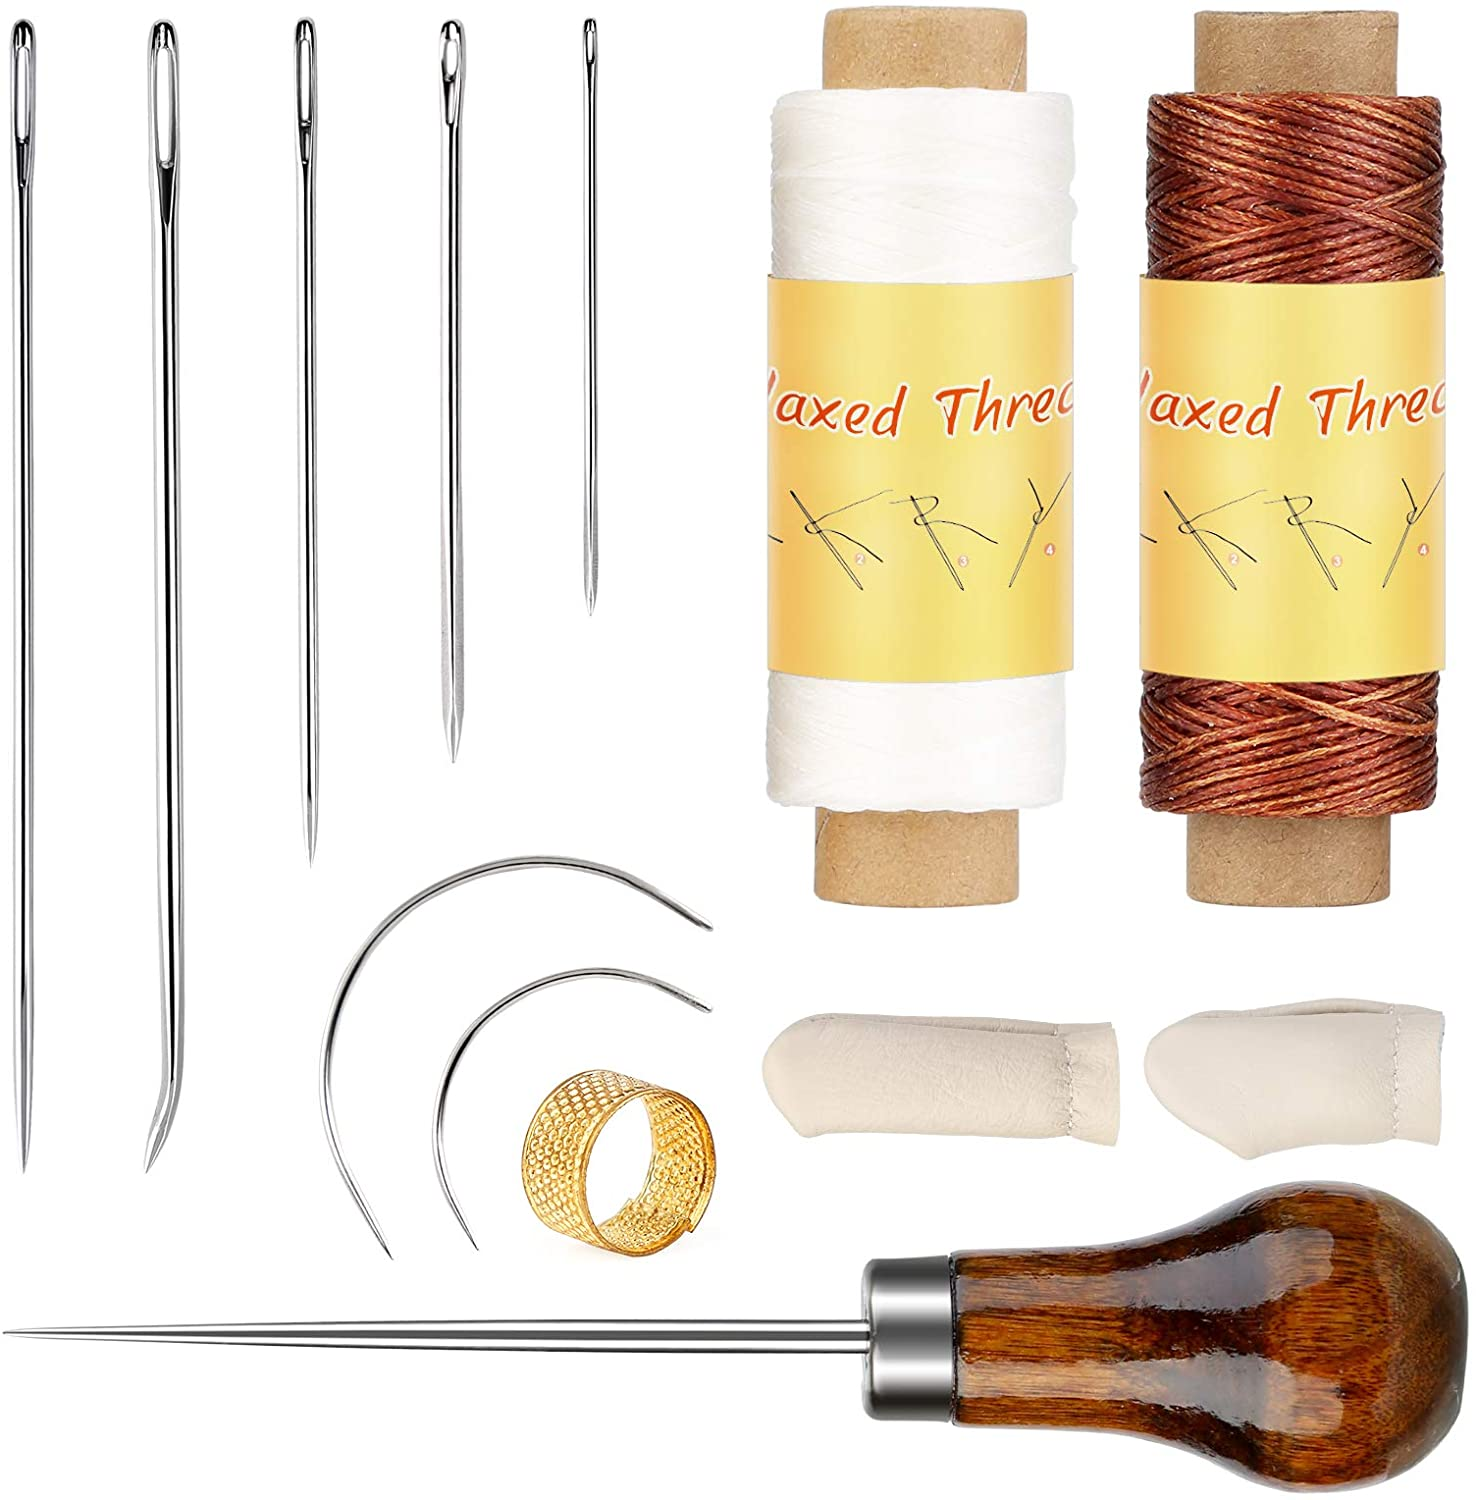 BUTZIE BUTZUE Upholstery Repair Kit, Leather Sewing Kit with Leather Upholstery Needles, Leather Sewing Waxed Thread, Sewing Awl, Finger Cots, Thimble for Leather DIY Stitching Repair Sewing